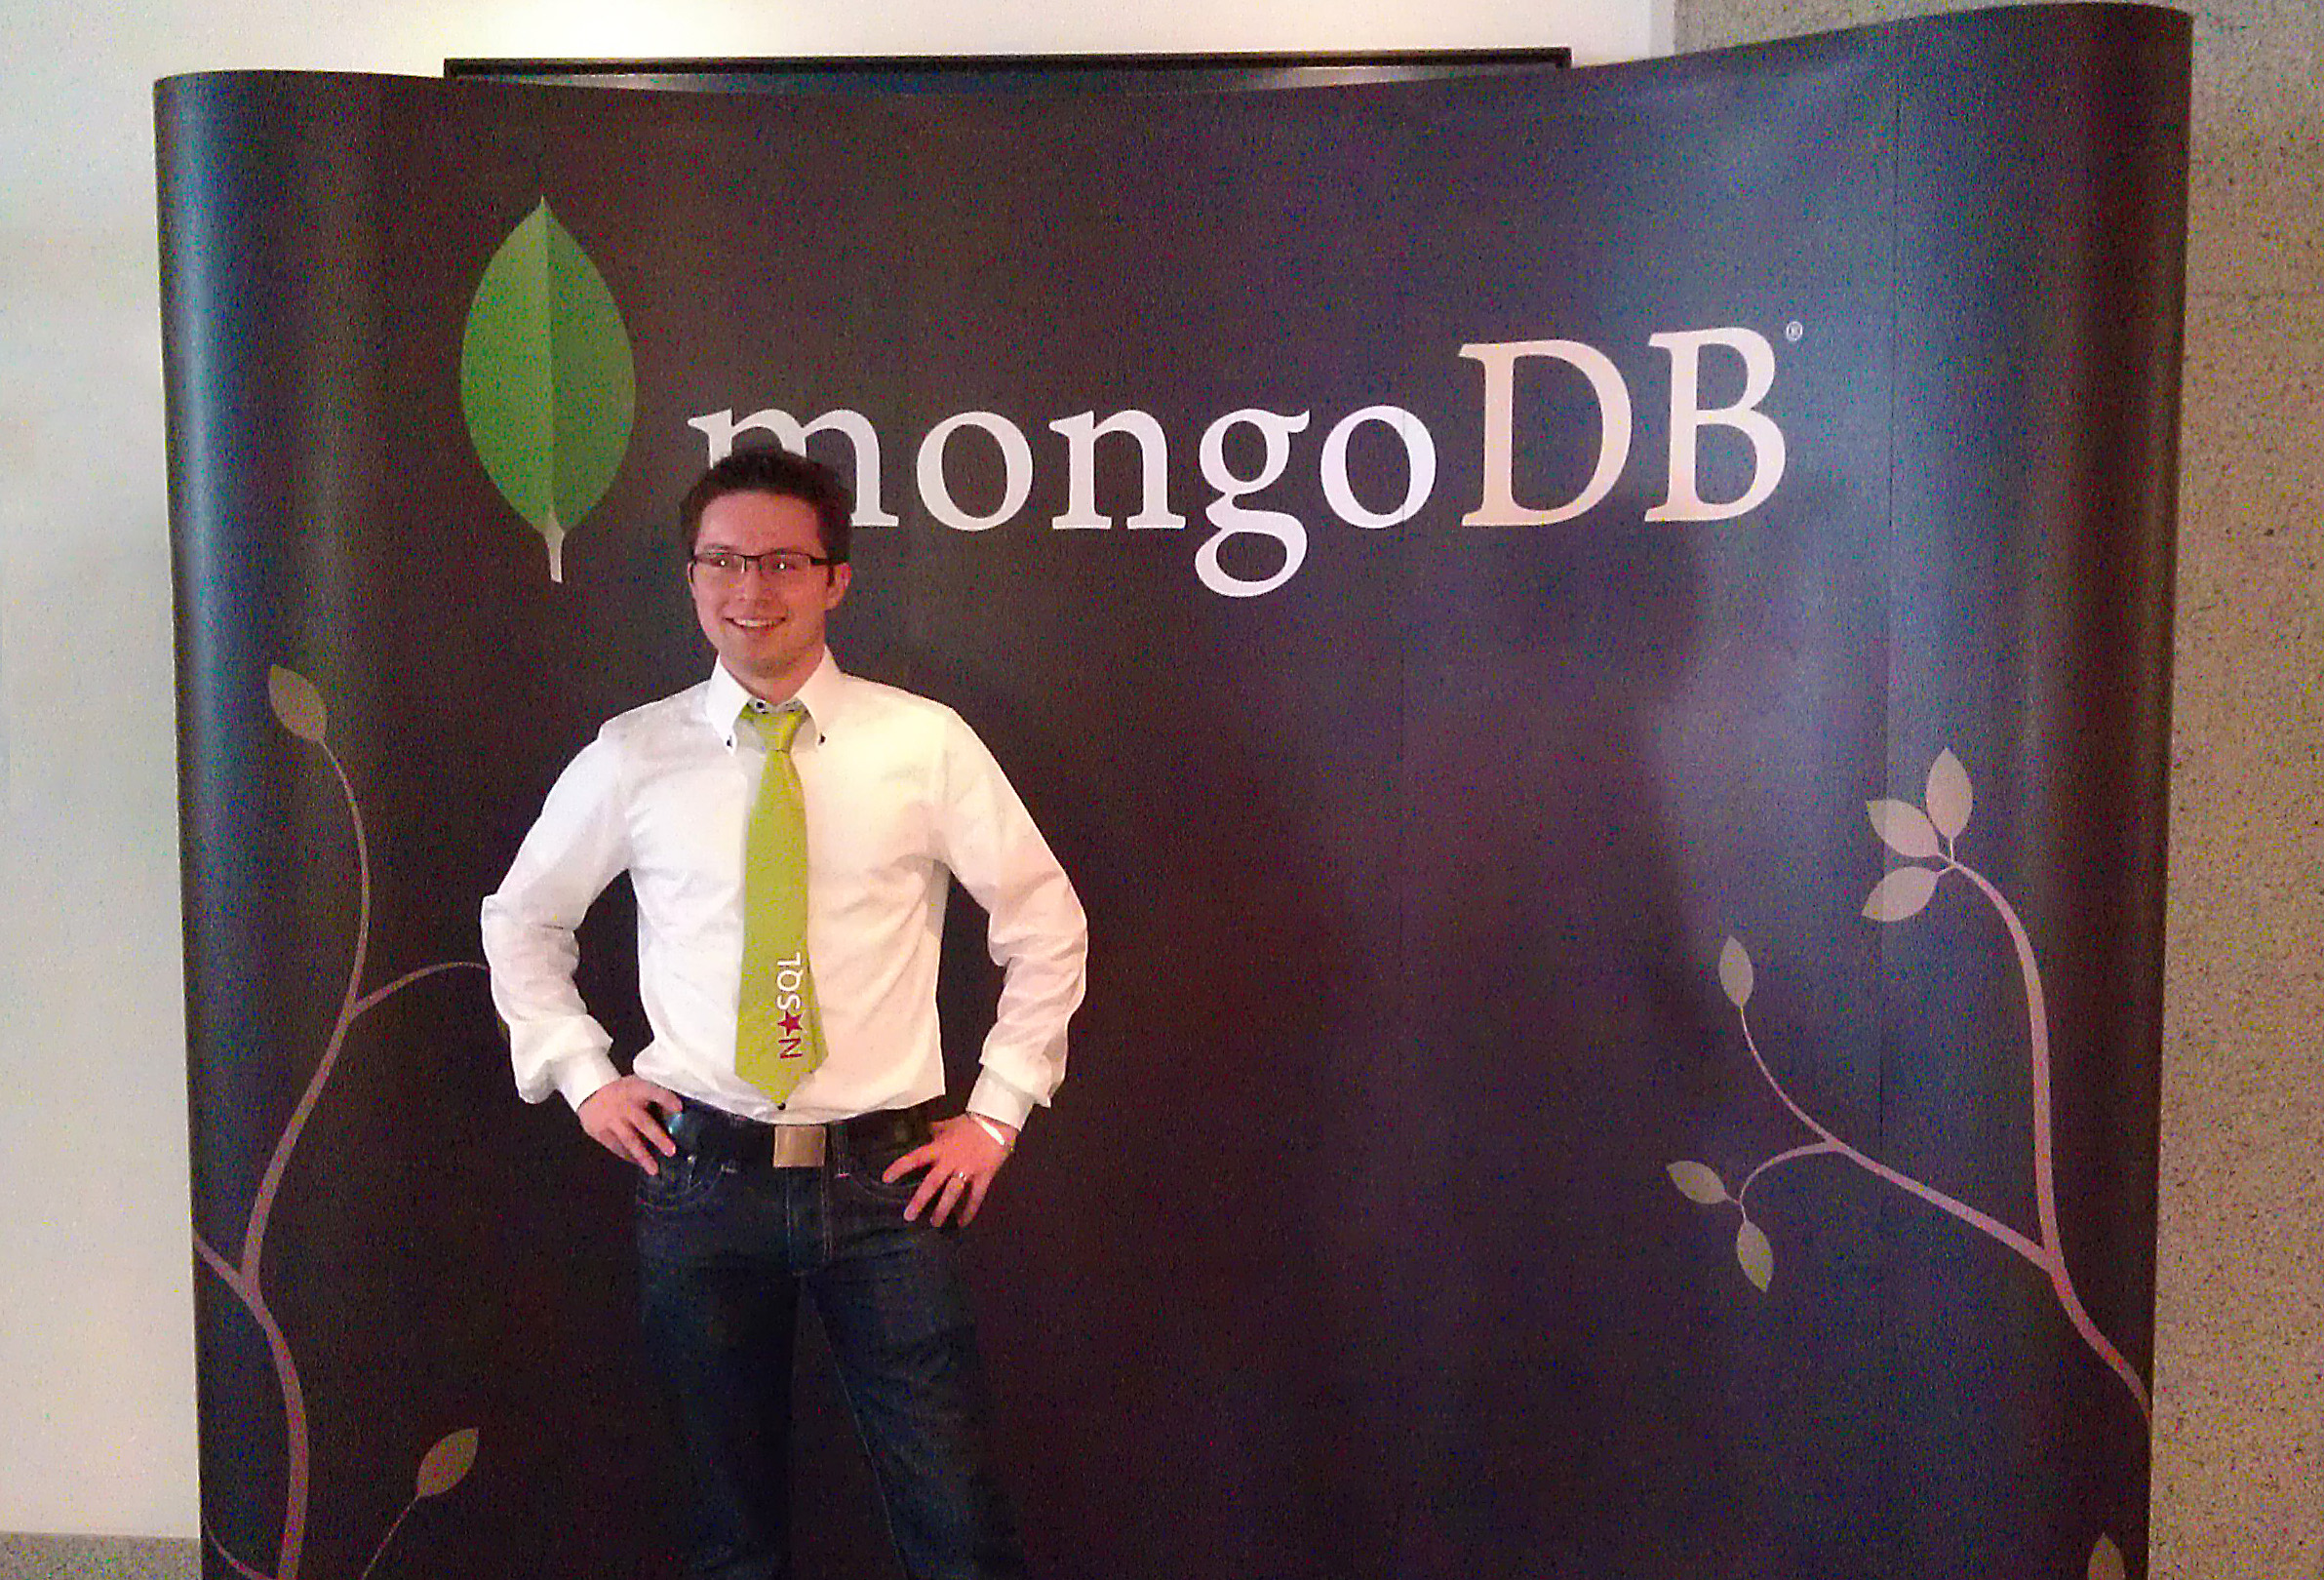 Johannes at MongoDB Berlin 2012